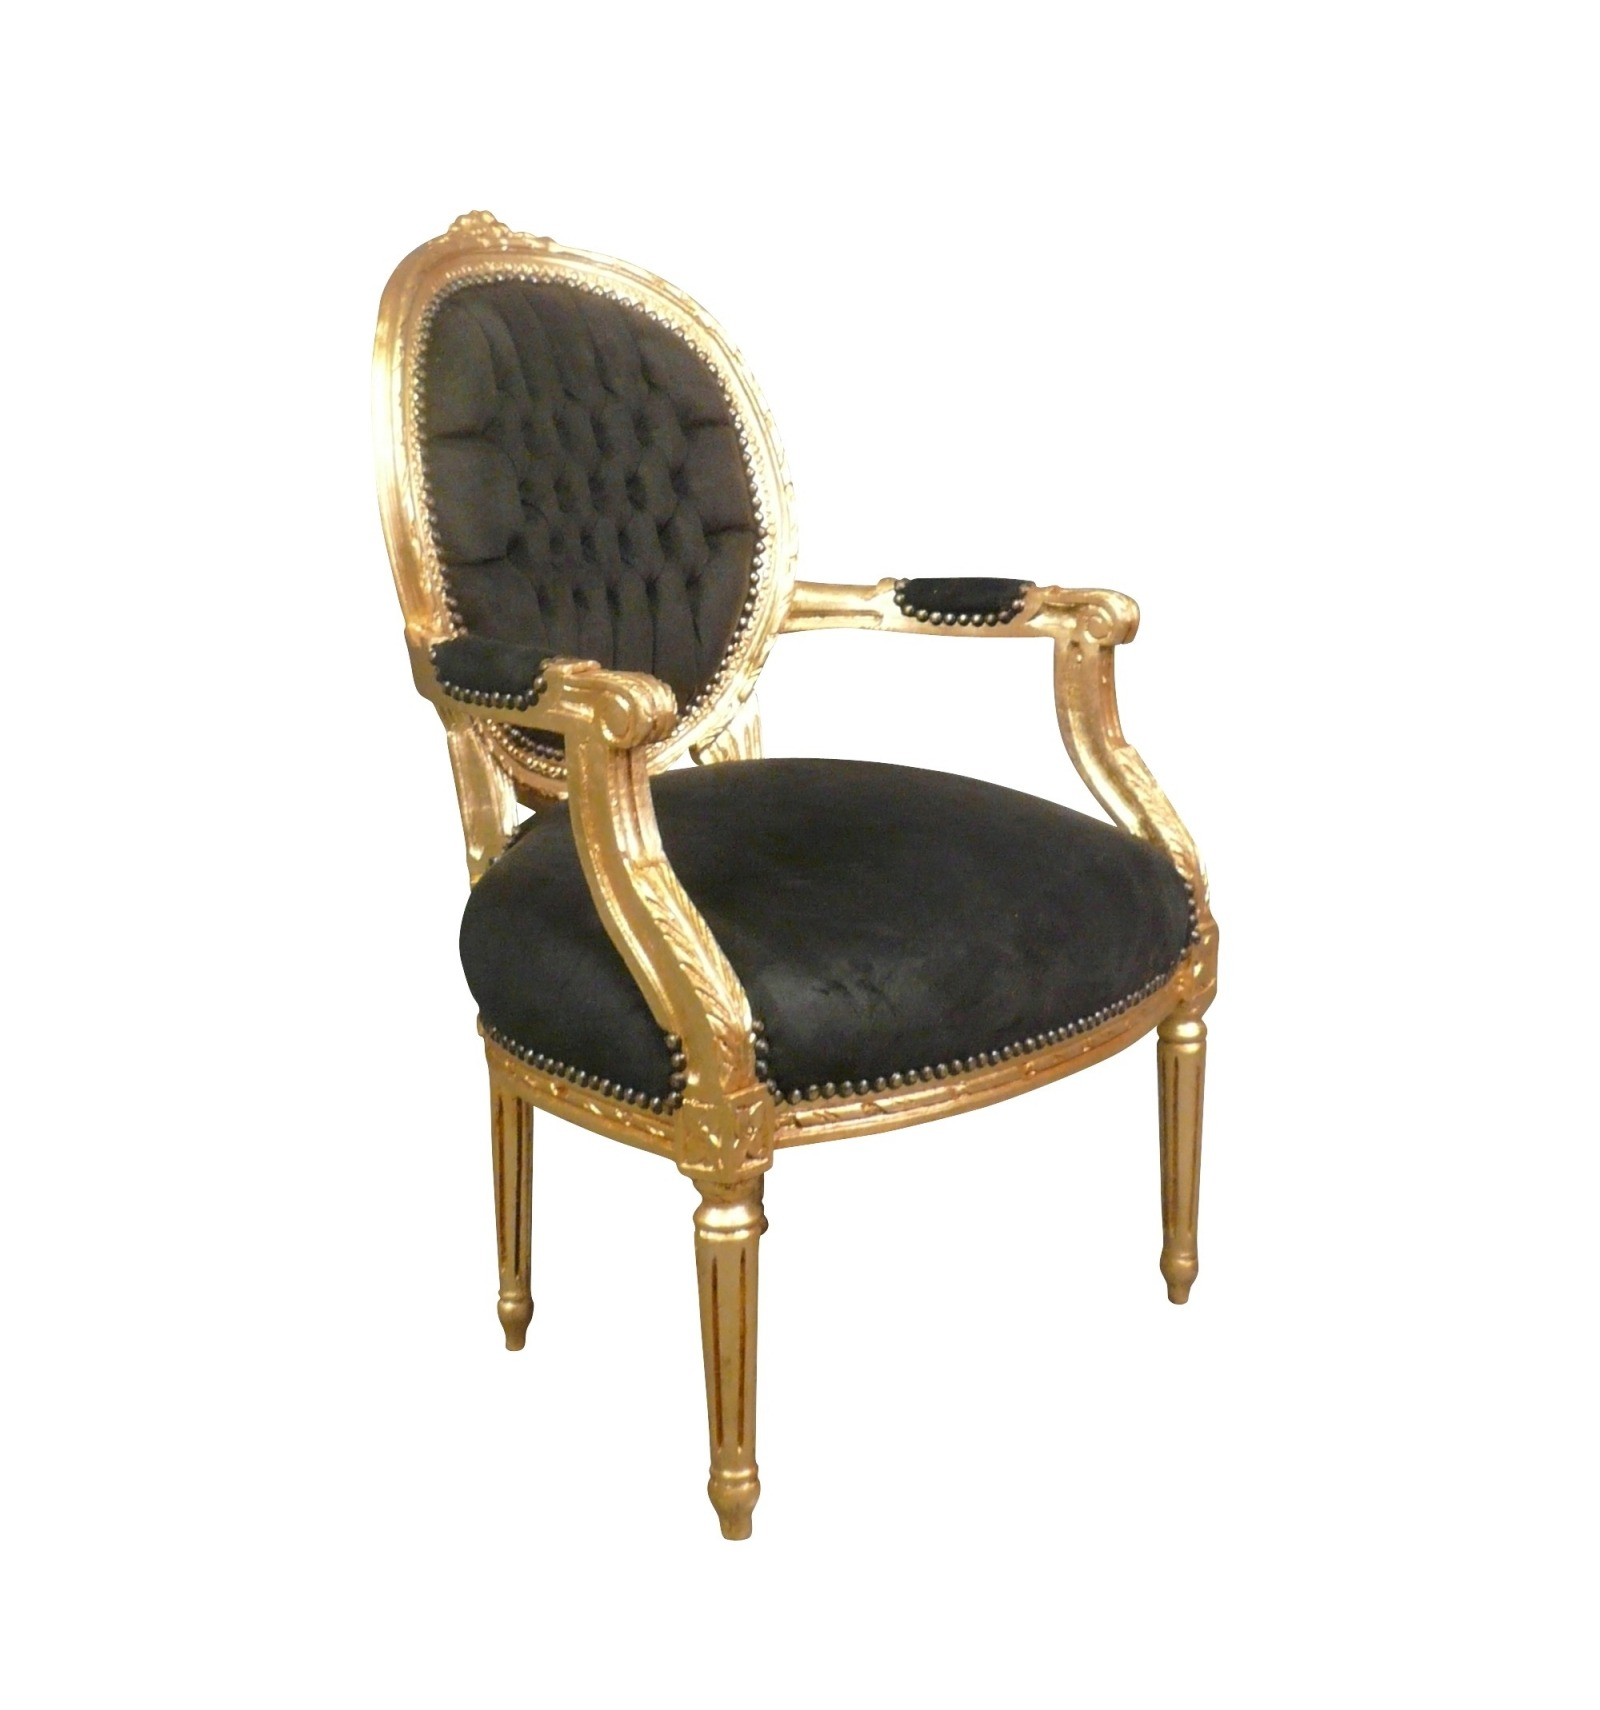 Chair Louis XVI Black And Gold Wood - Fauteuil louis xvi